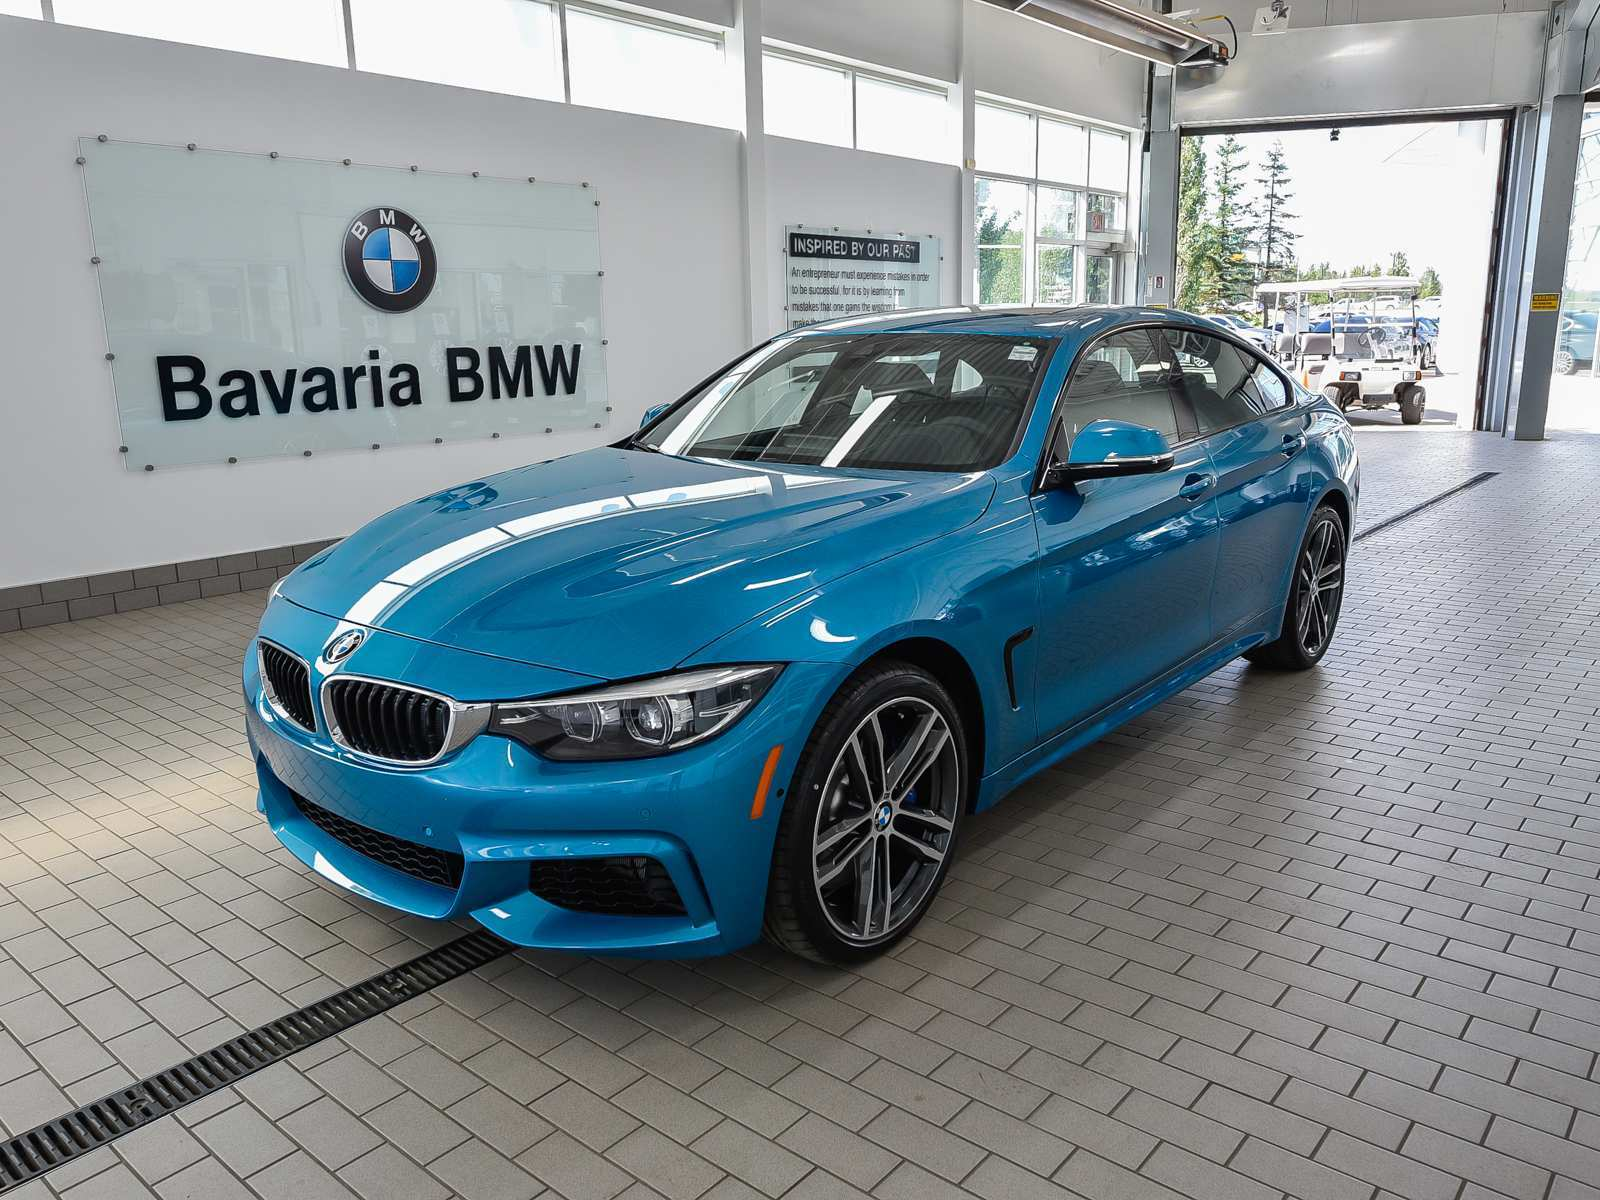 60 New 2019 Bmw Coupe Interior with 2019 Bmw Coupe